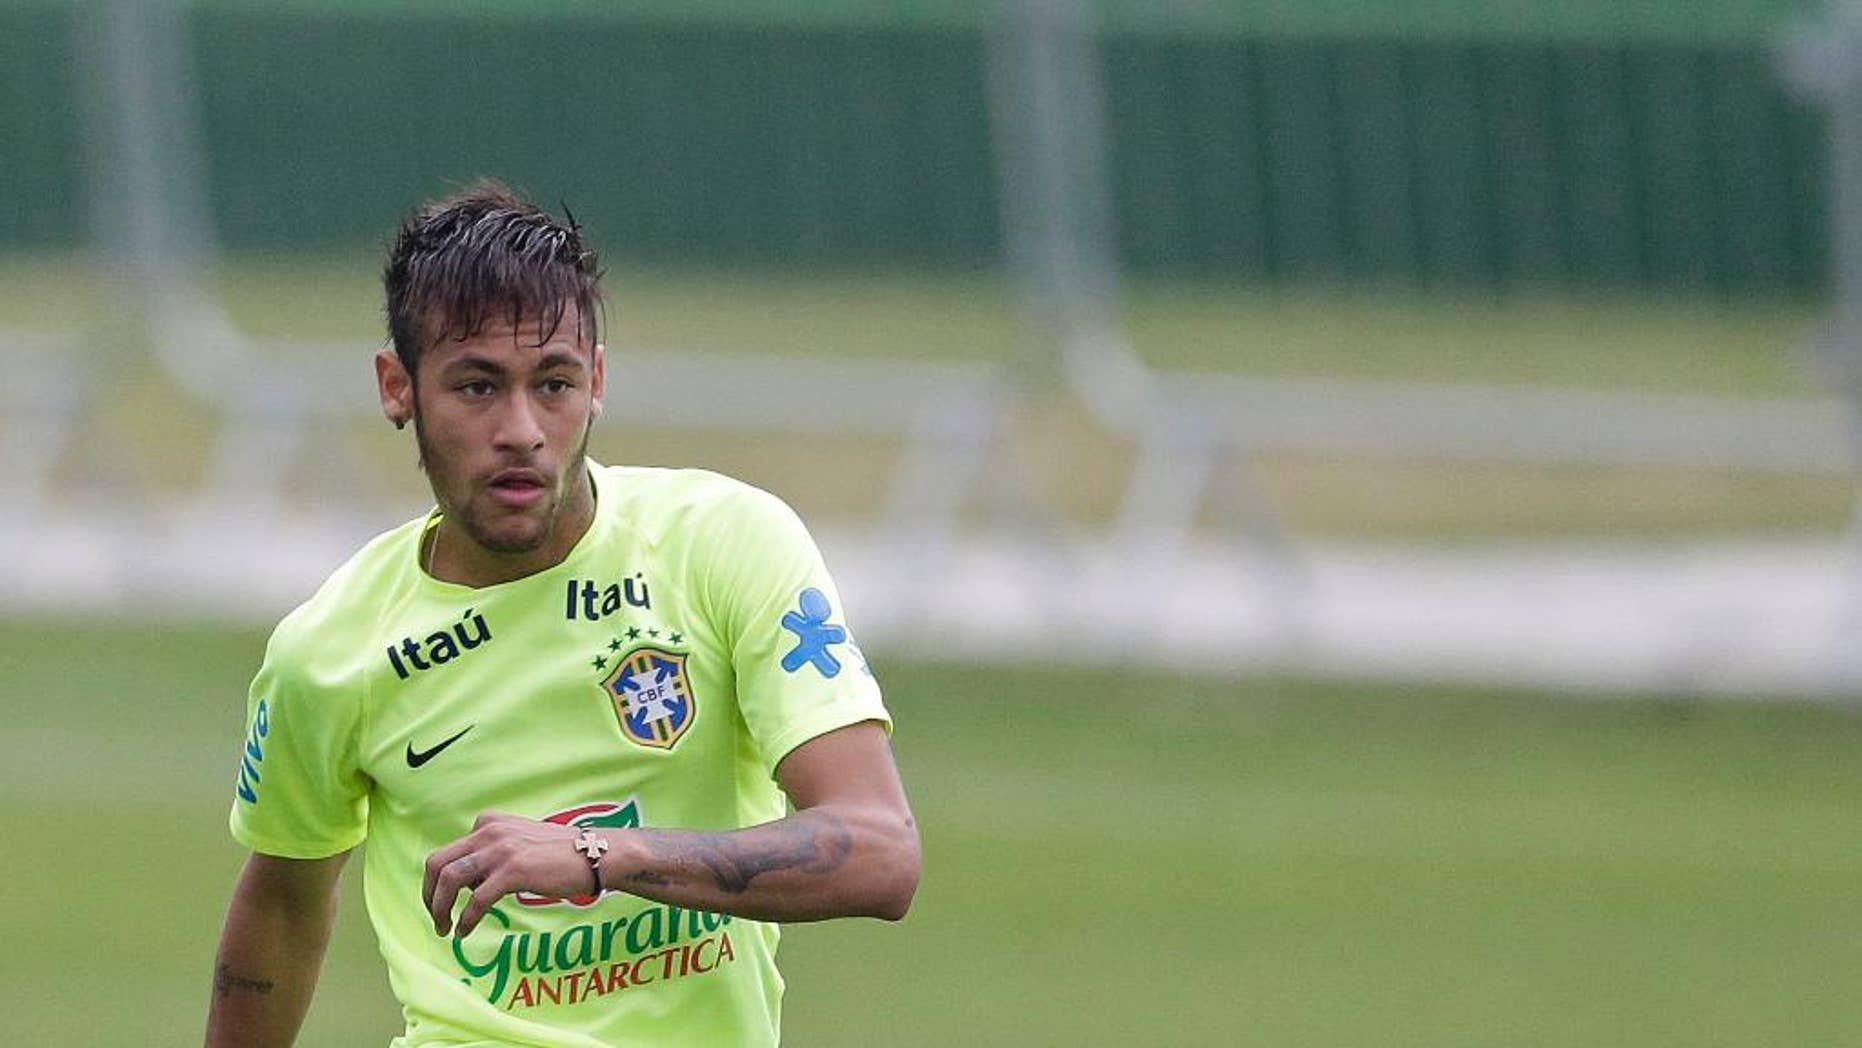 Brazil's Neymar practices during a training session of the Brazilian national soccer team, at the Granja Comary training center in Teresopolis, Brazil, Monday, June 9, 2014. Brazil plays in group A of the 2014 soccer World Cup. (AP Photo/Andre Penner)